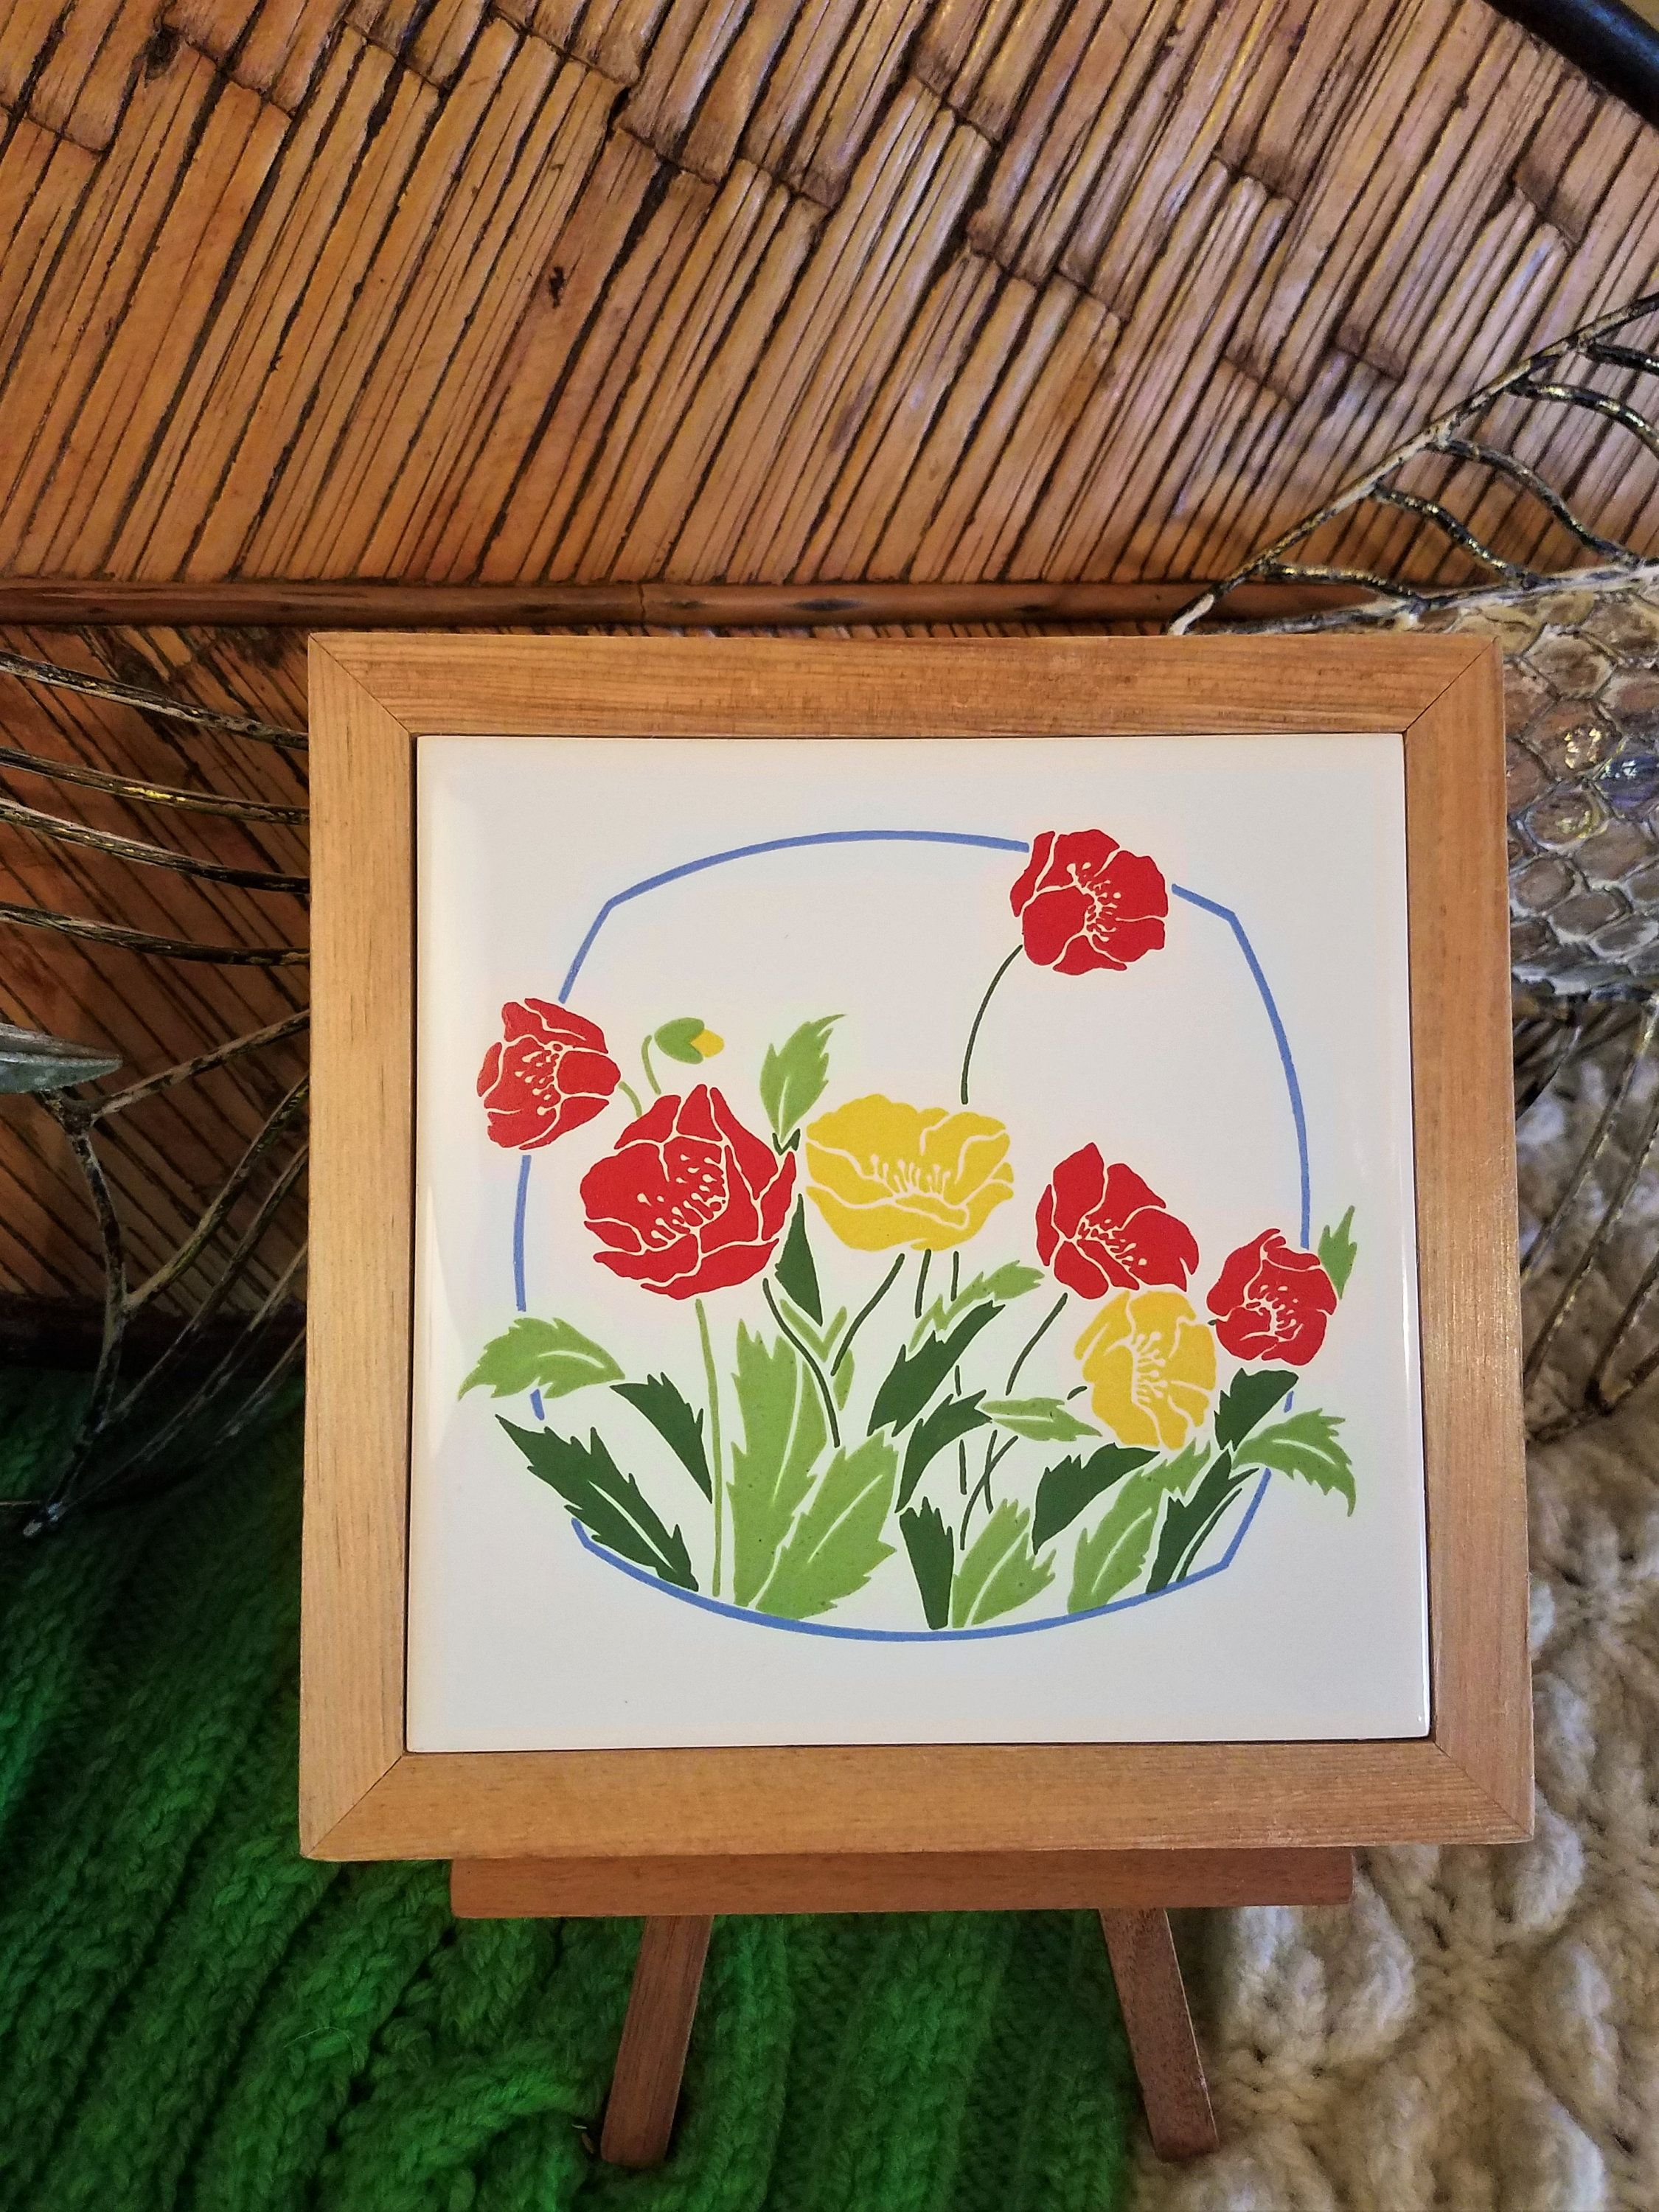 Vintage framed floral ceramic tile trivetwall plaque groovy hippie vintage framed floral ceramic tile trivetwall plaque groovy hippie decorboho decor made in taiwan kitchen decor dailygadgetfo Choice Image